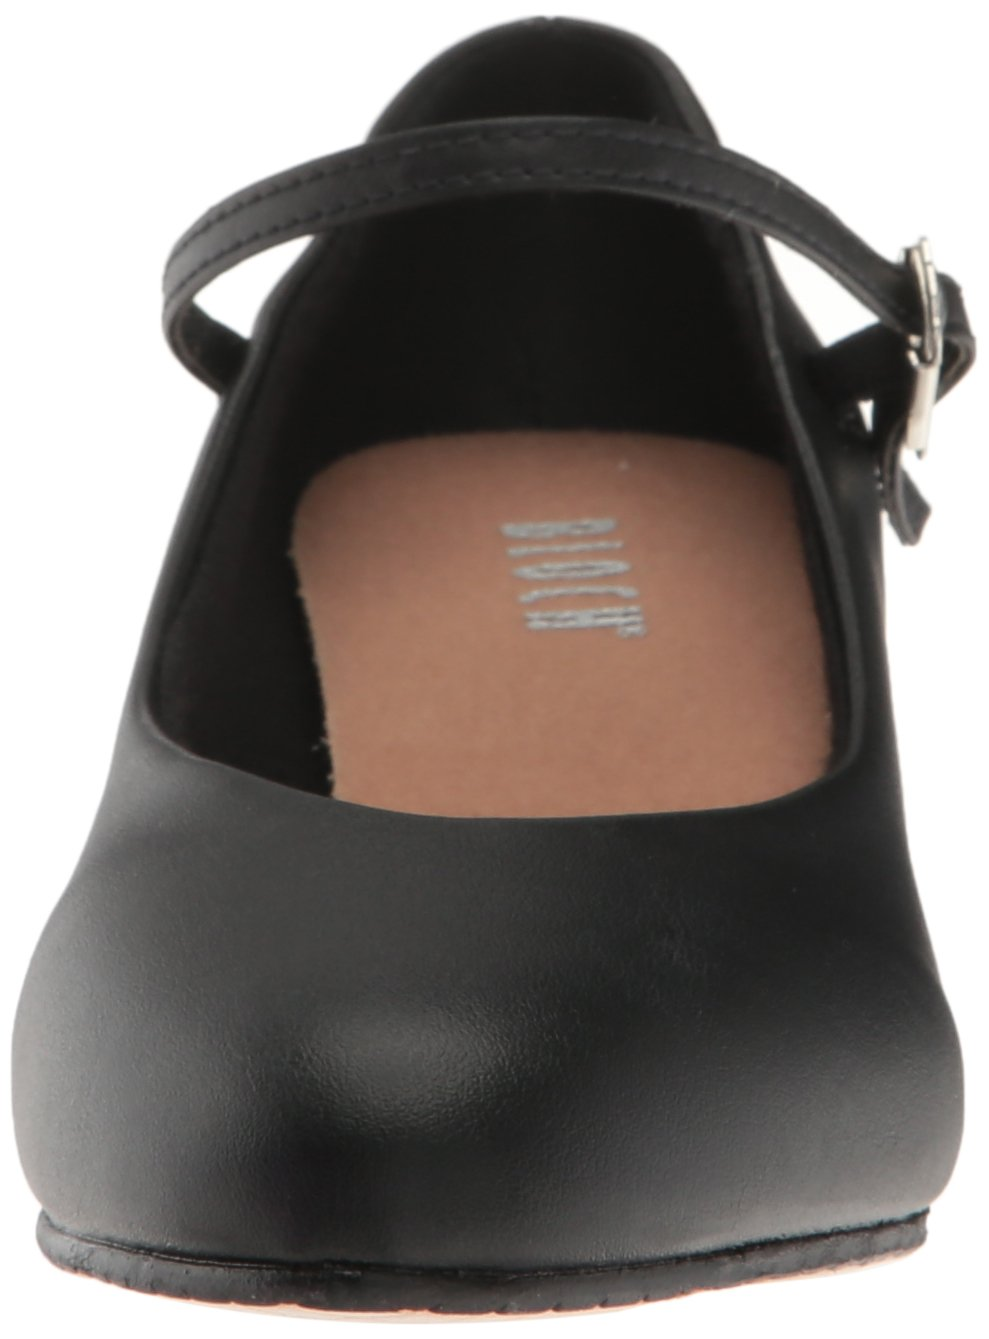 Bloch Dance Shoe Women's Broadway Lo Character Shoe Dance B00599ZFFW 10 W US|Black 3aca88